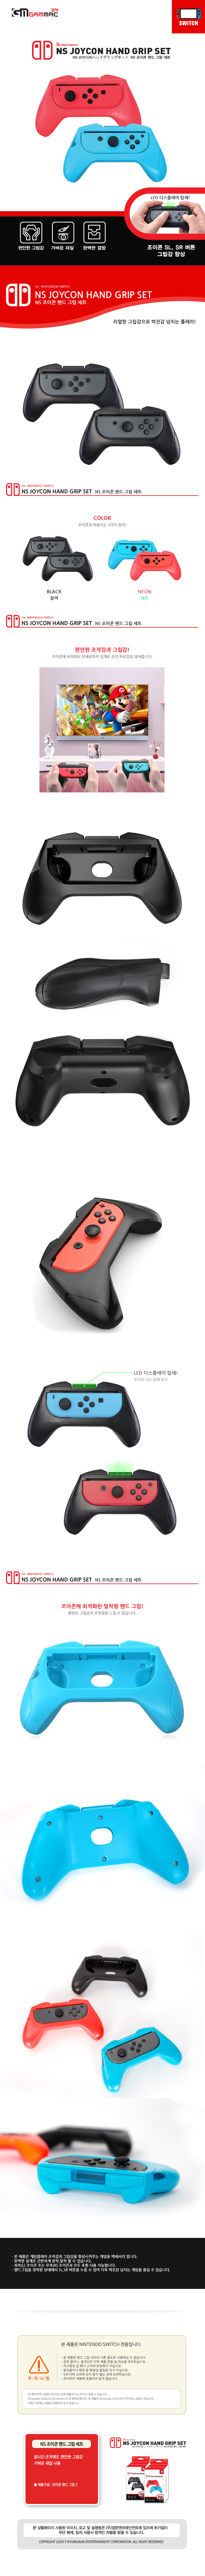 25_NS_joycon_grip_set.jpg